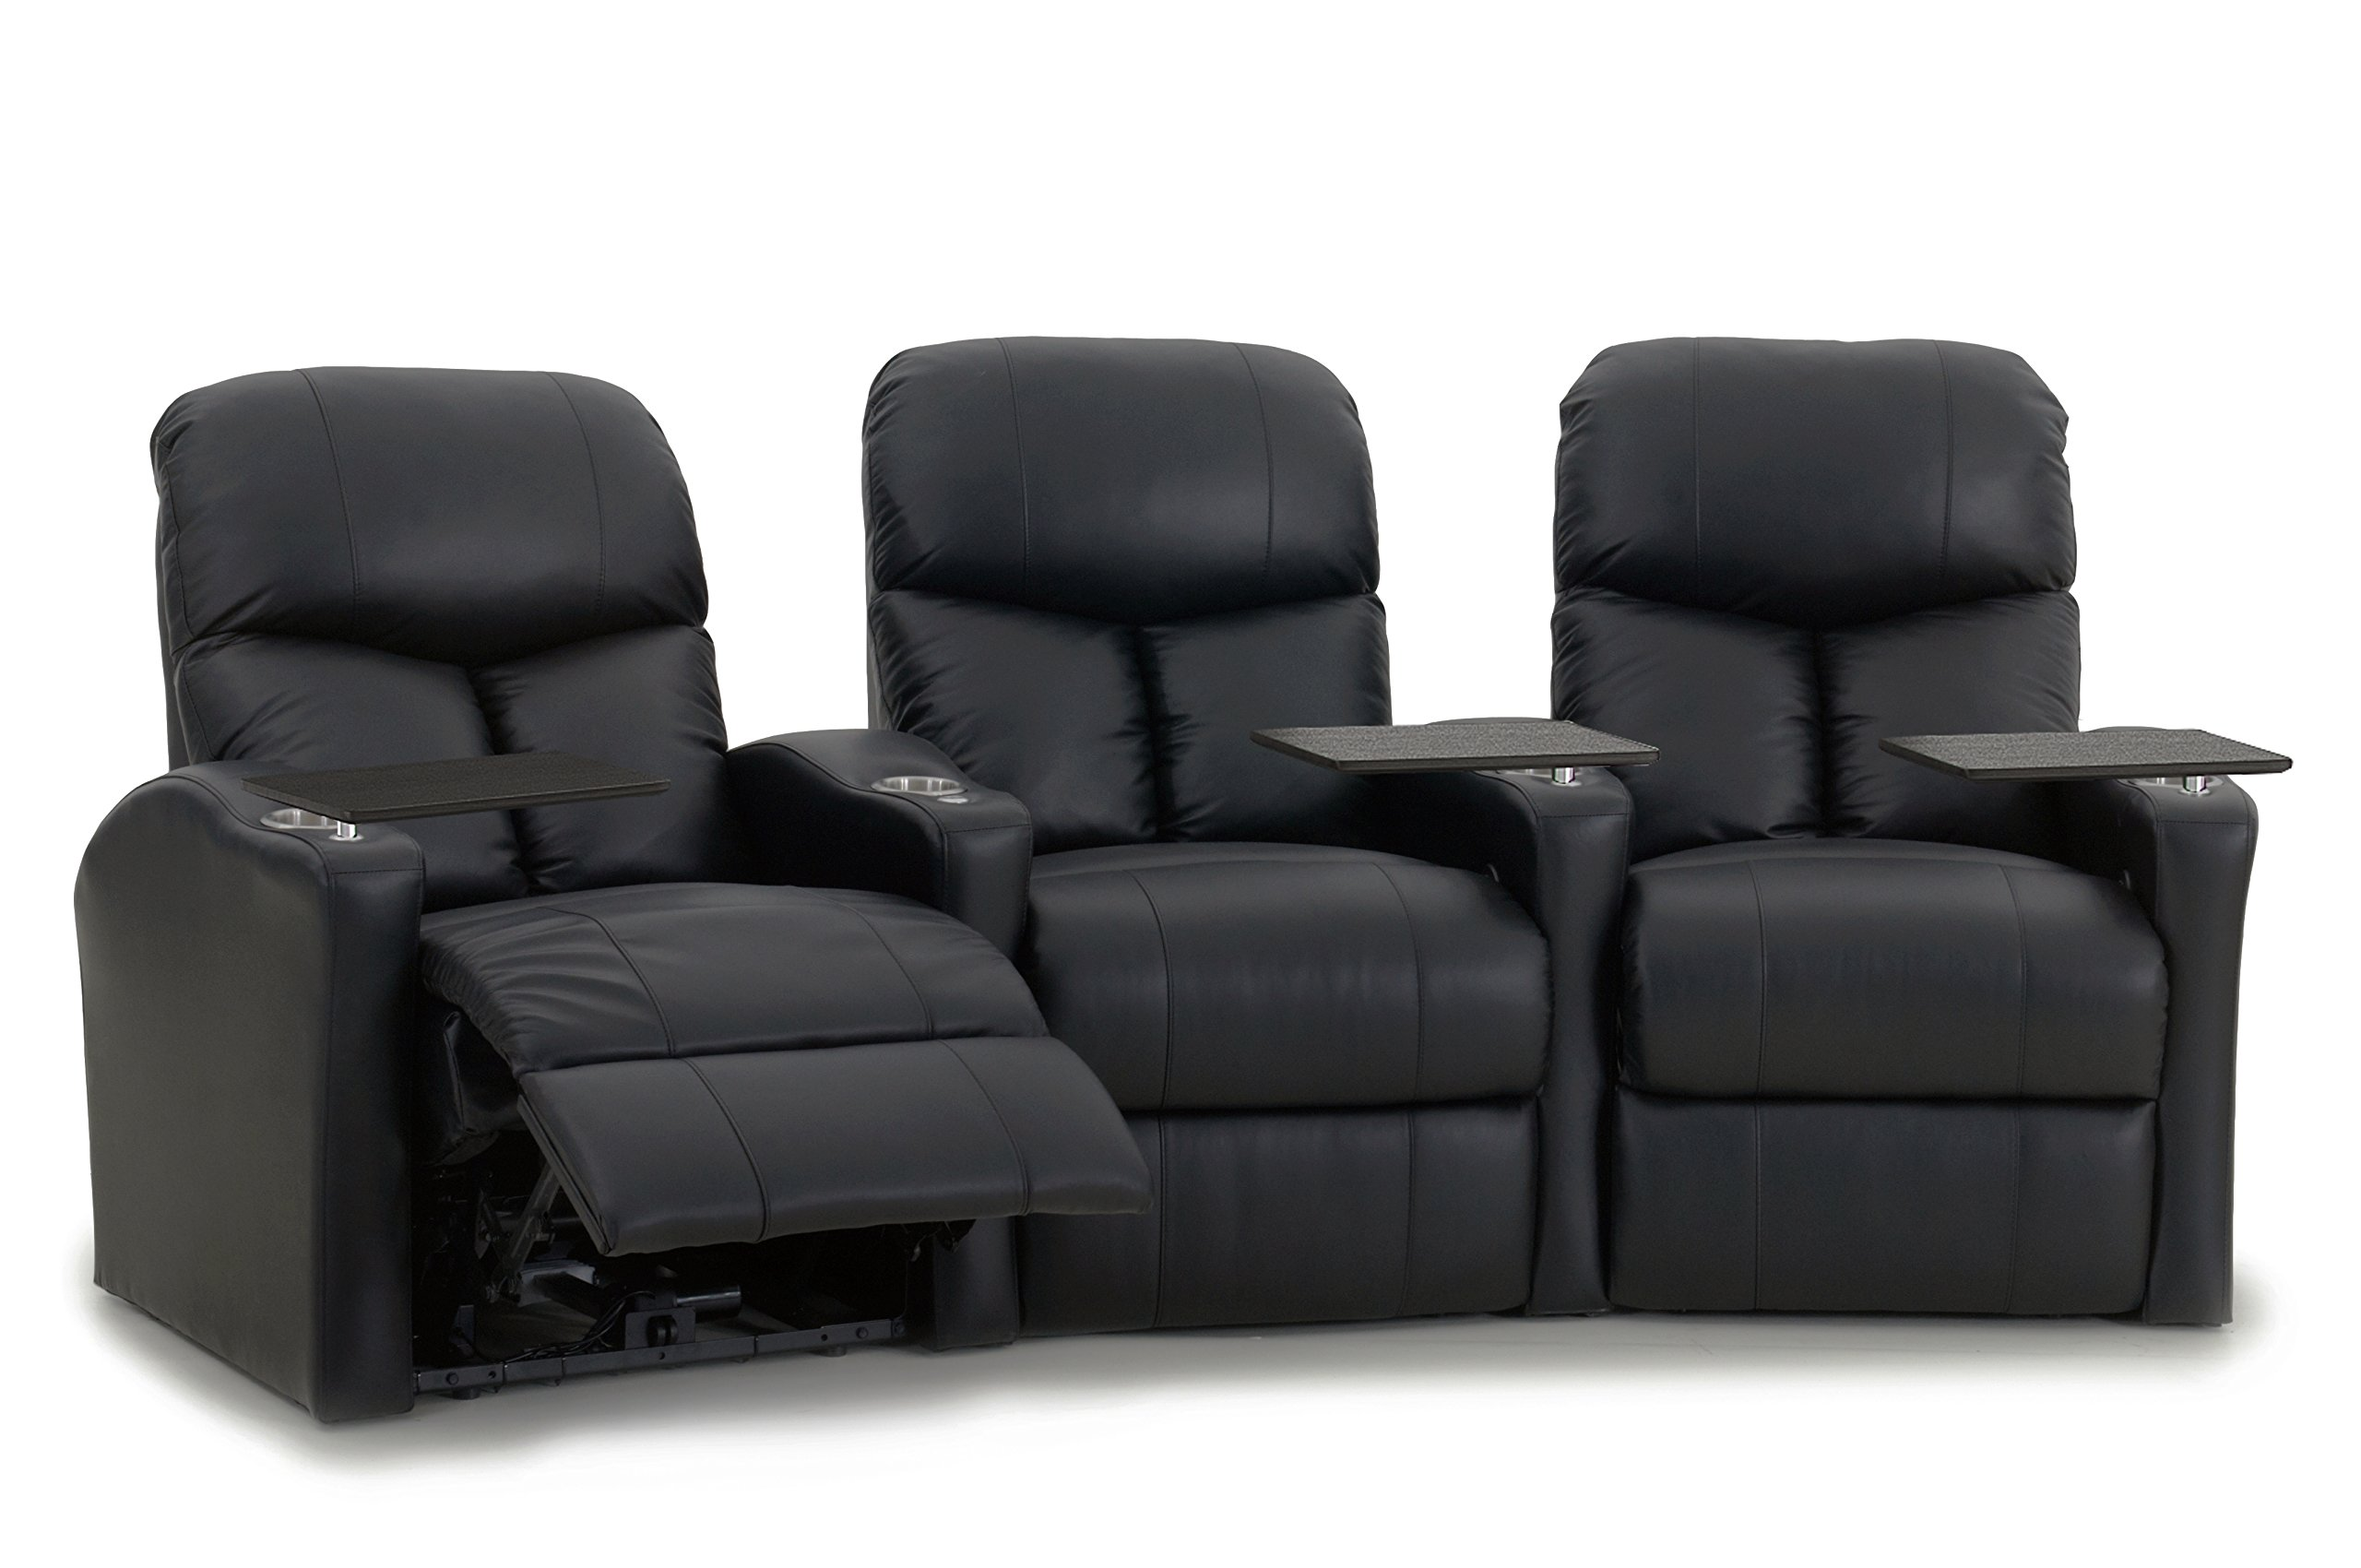 Octane Seating BOLT-R3CM-BND-BL Octane Bolt XS400 Leather Home Theater Recliner Set (Row of 3)